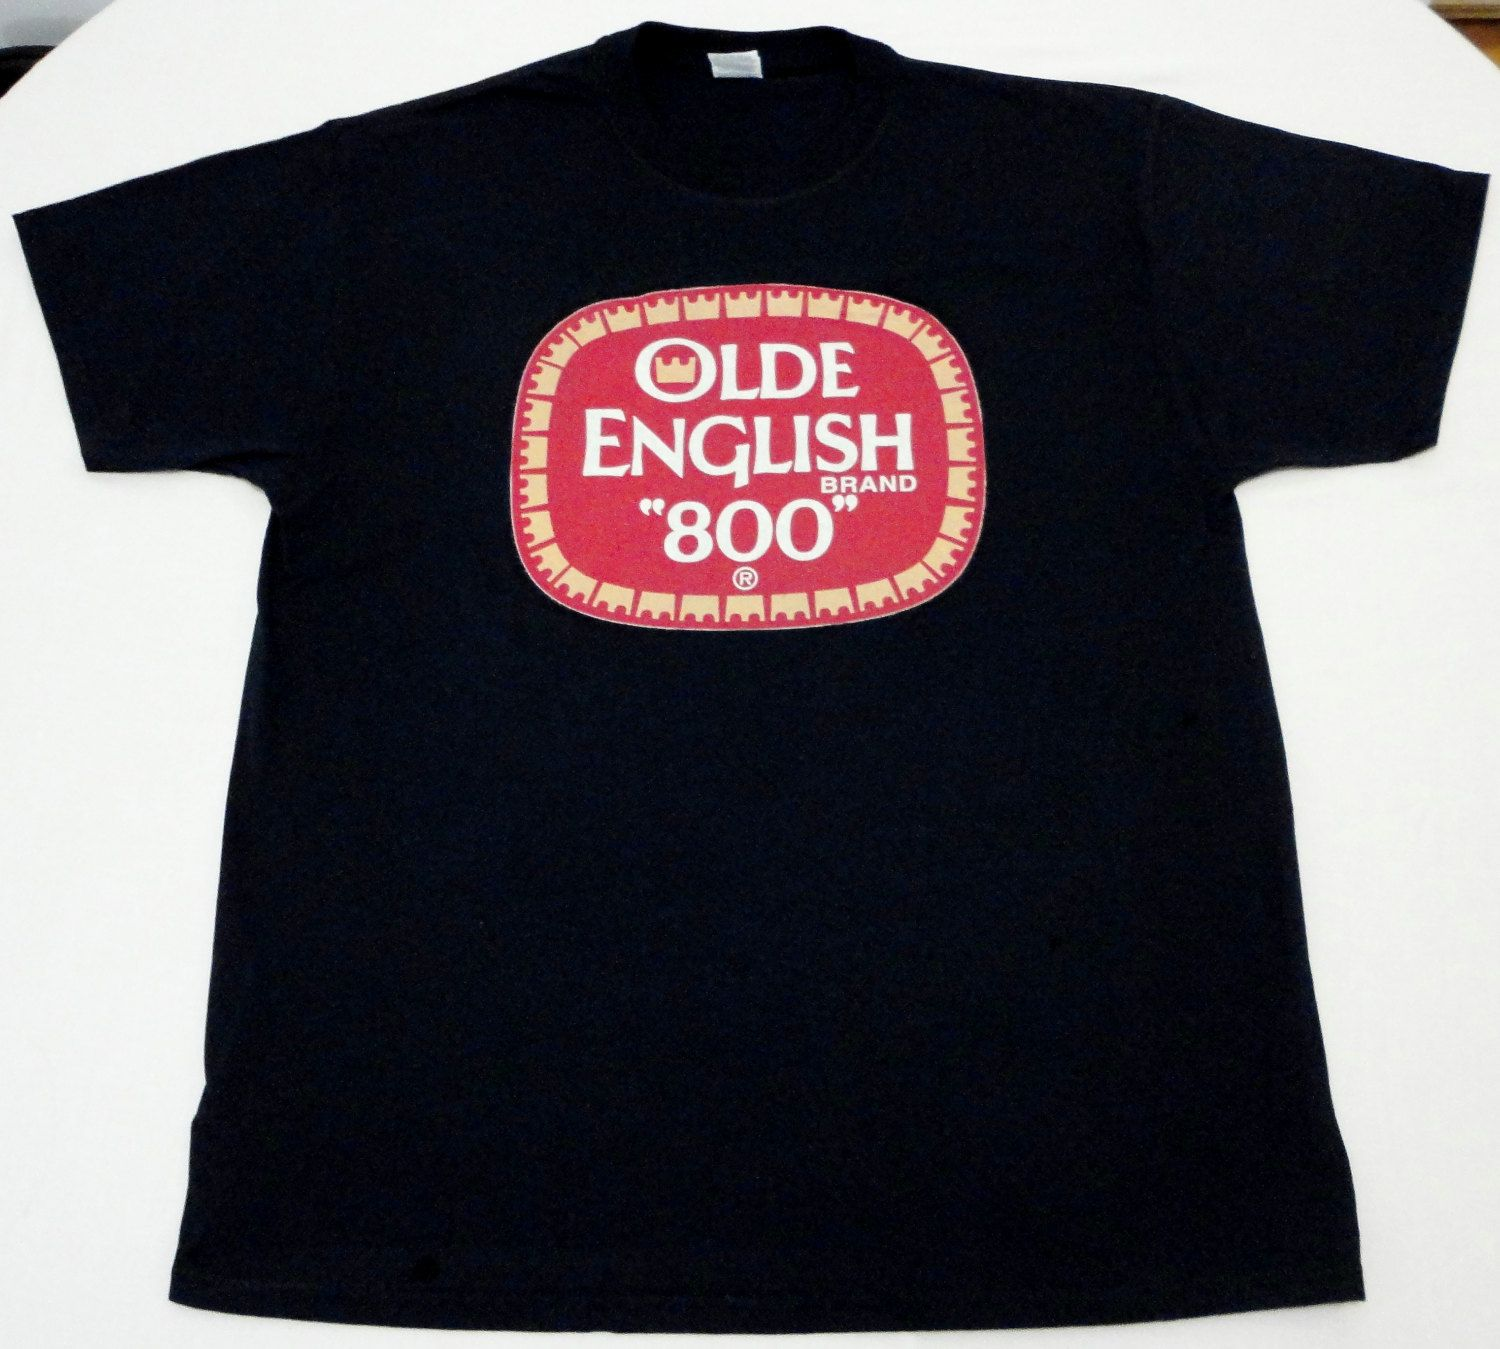 Black sabbath t shirt etsy - Old English 800 Beer T Shirt By Gonzotees On Etsy